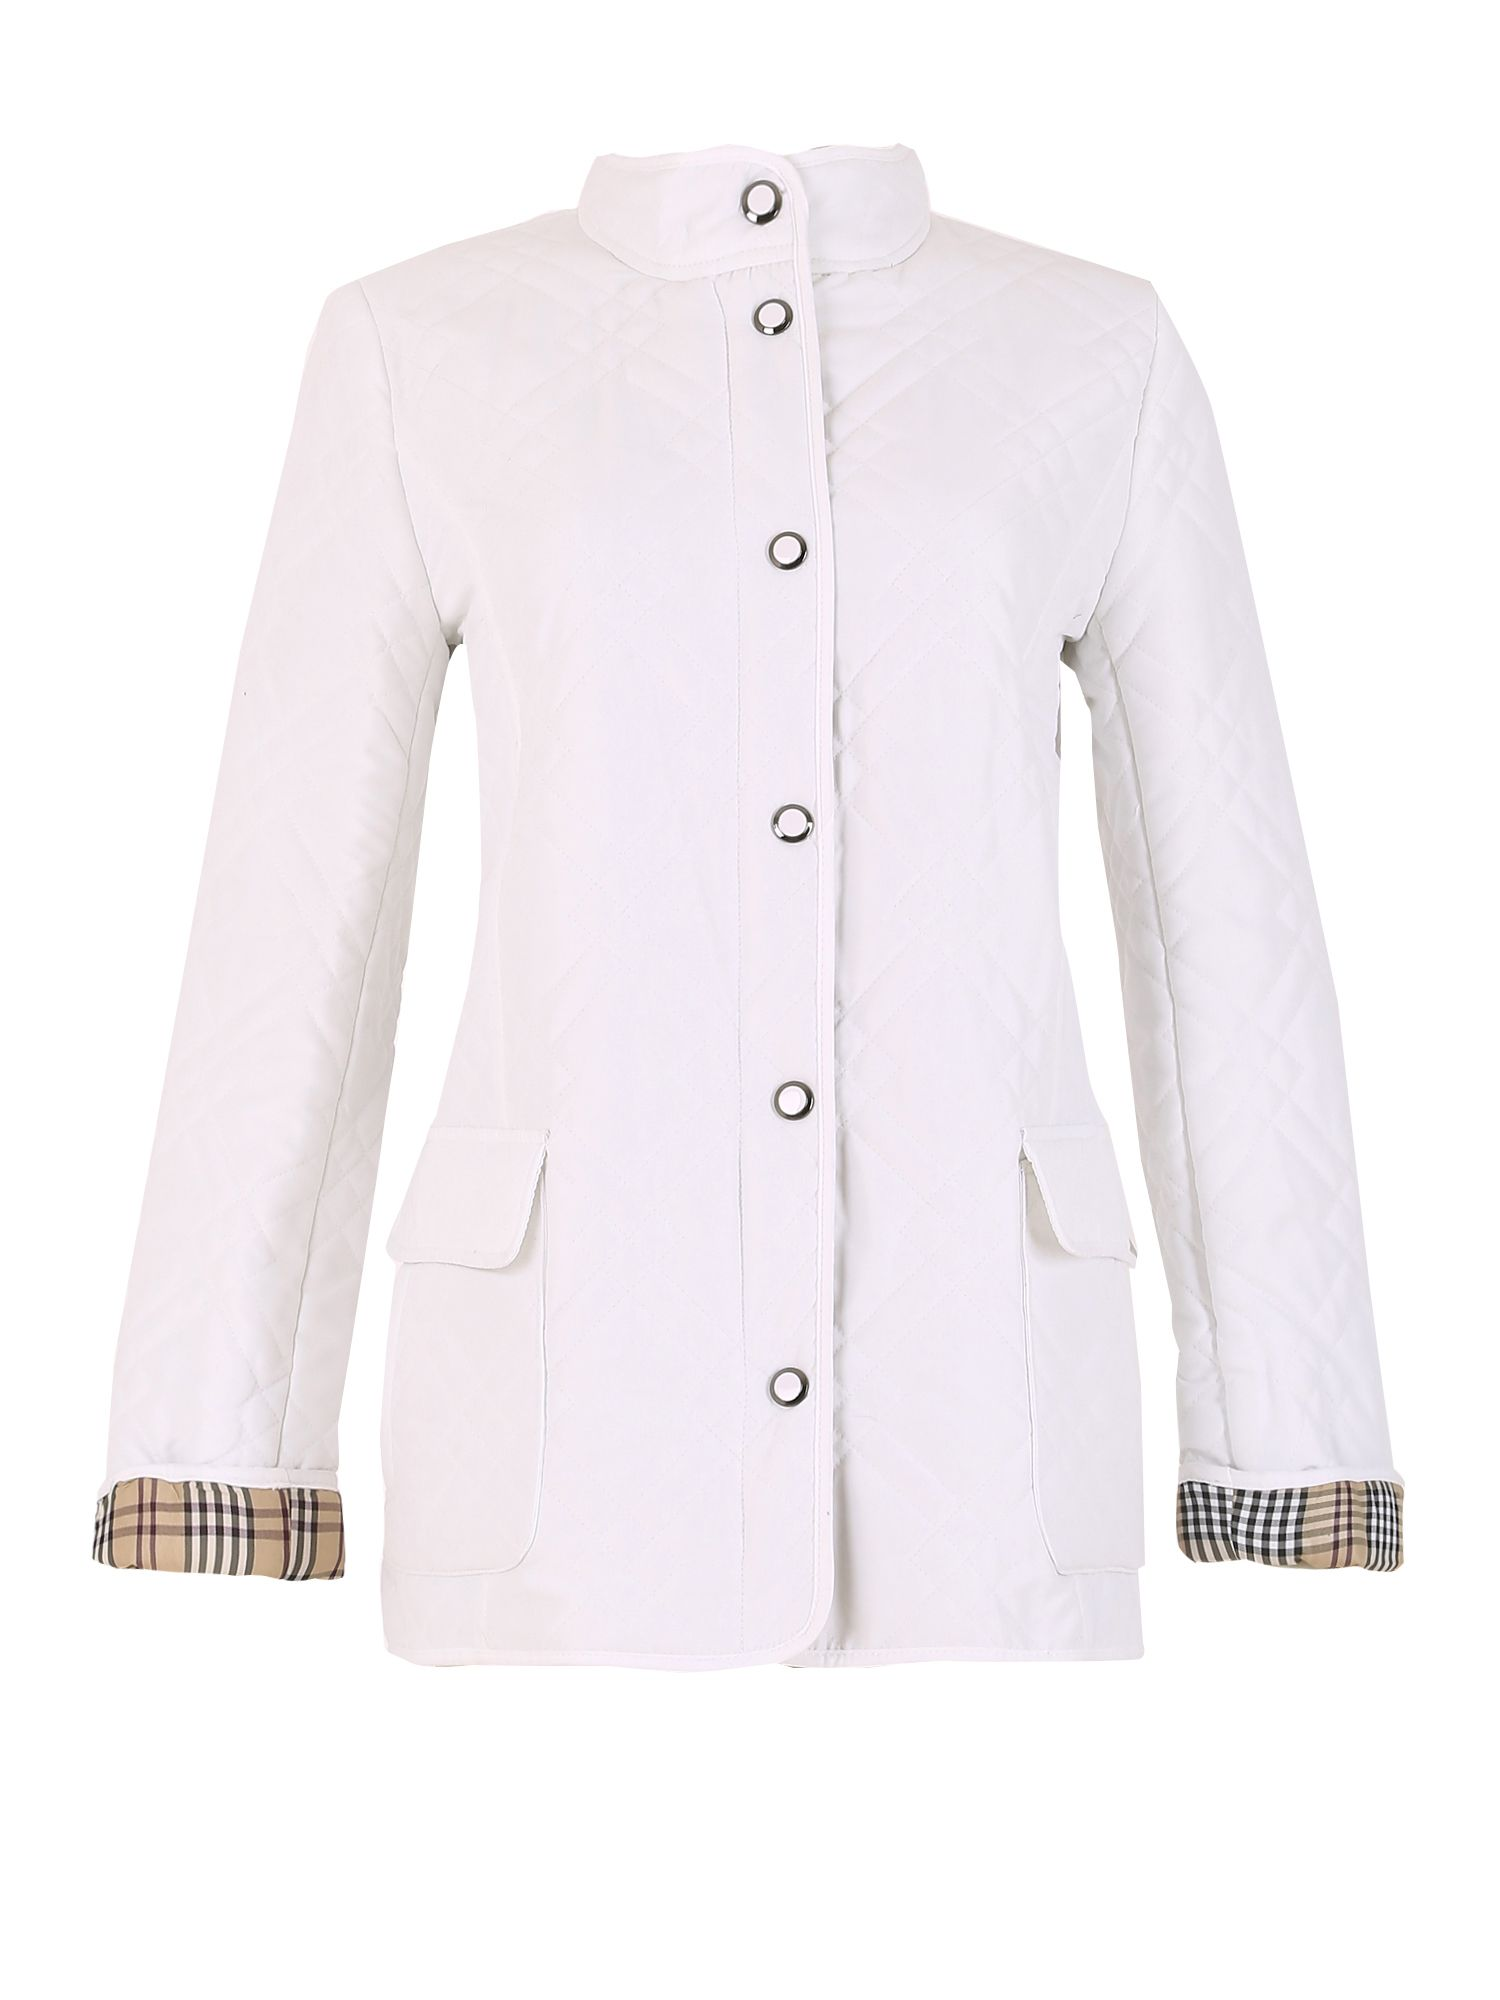 David Barry Ladies Jacket, White